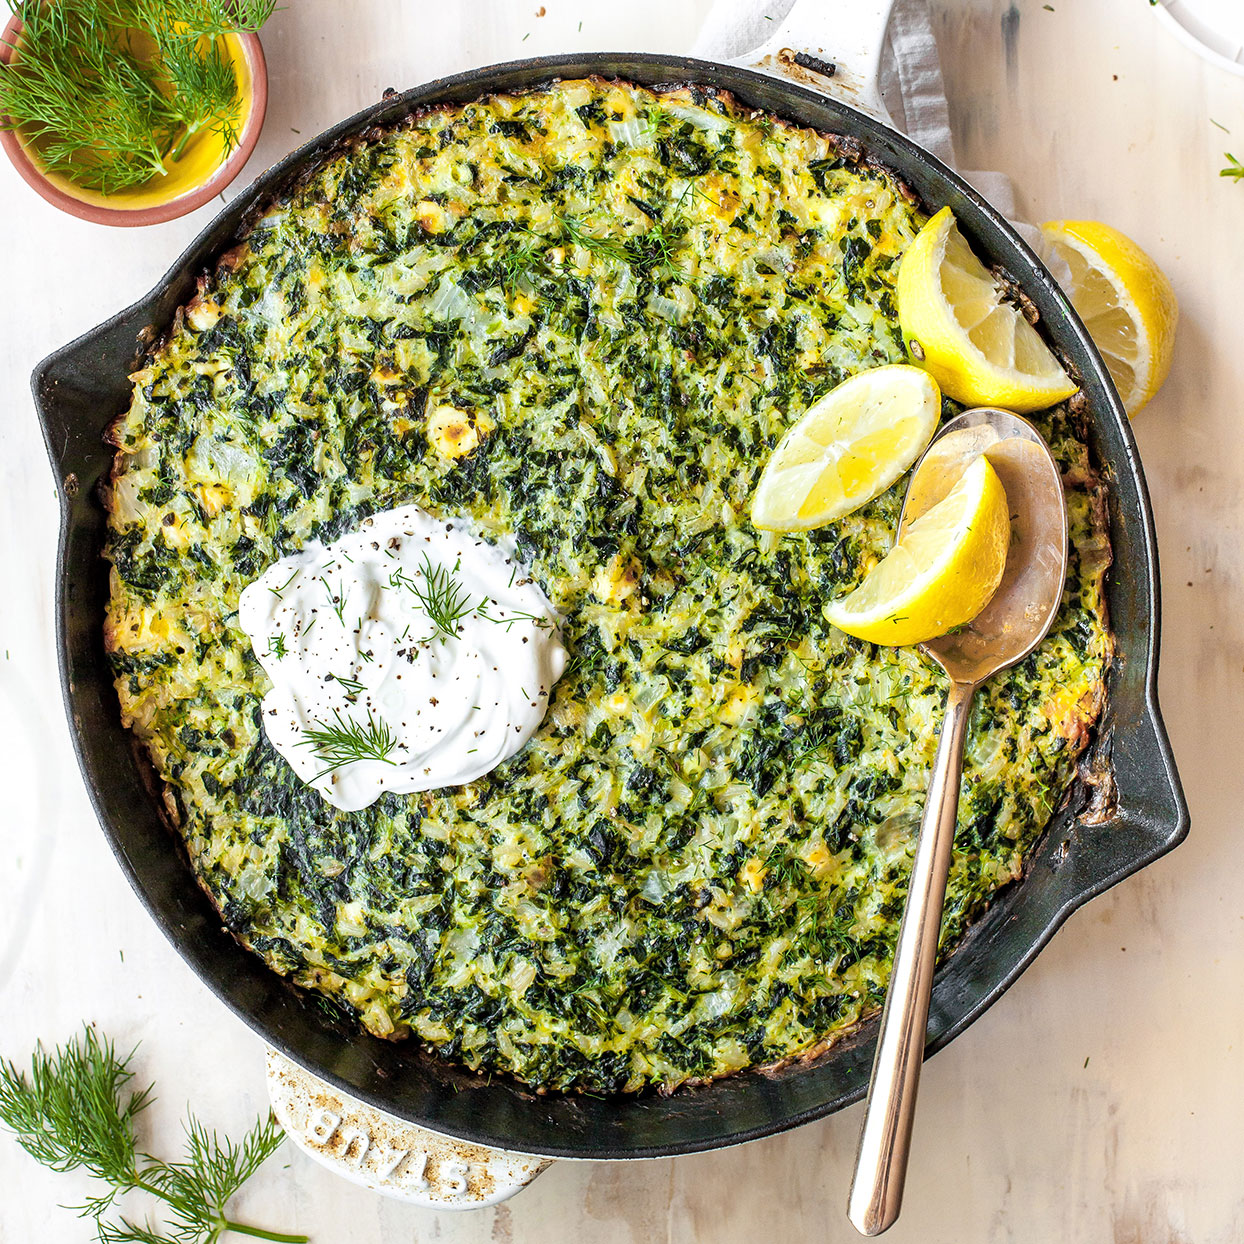 This one-pan recipe is the casserole version of spanakopita! It's hearty enough to enjoy as a vegetarian lunch or dinner, yet versatile enough to serve alongside just about any protein. To make it extra creamy, top each serving with a dollop of sour cream.